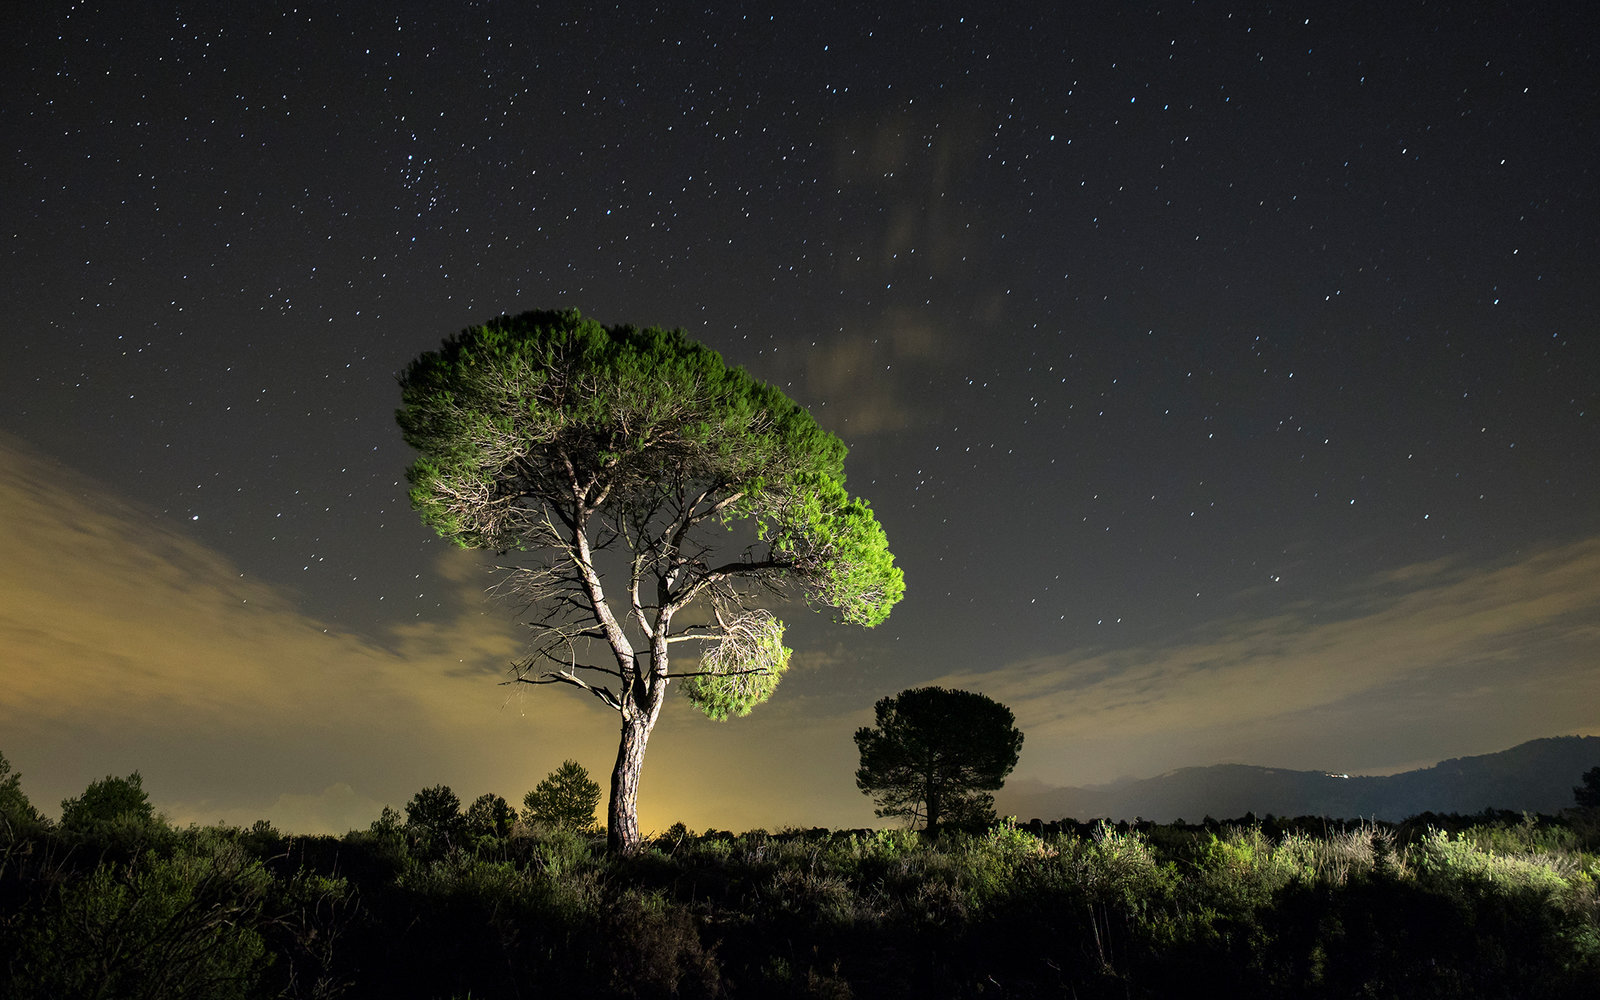 Solitary tree with crepuscular light and stars